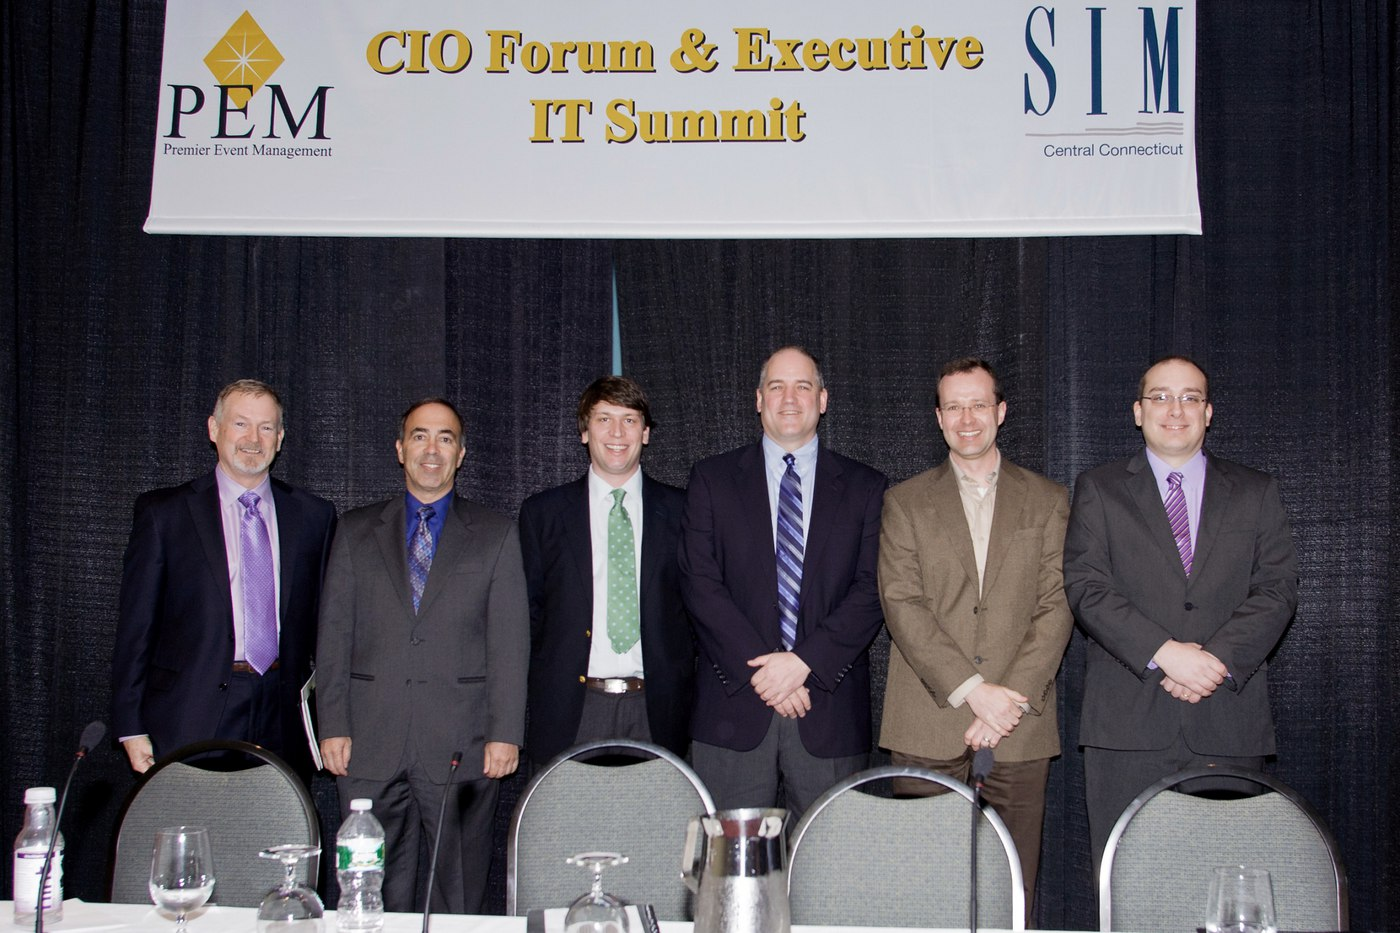 2011 Connecticut SIM CIO Forum and Executive IT Summit Concludes With Positive Results for All